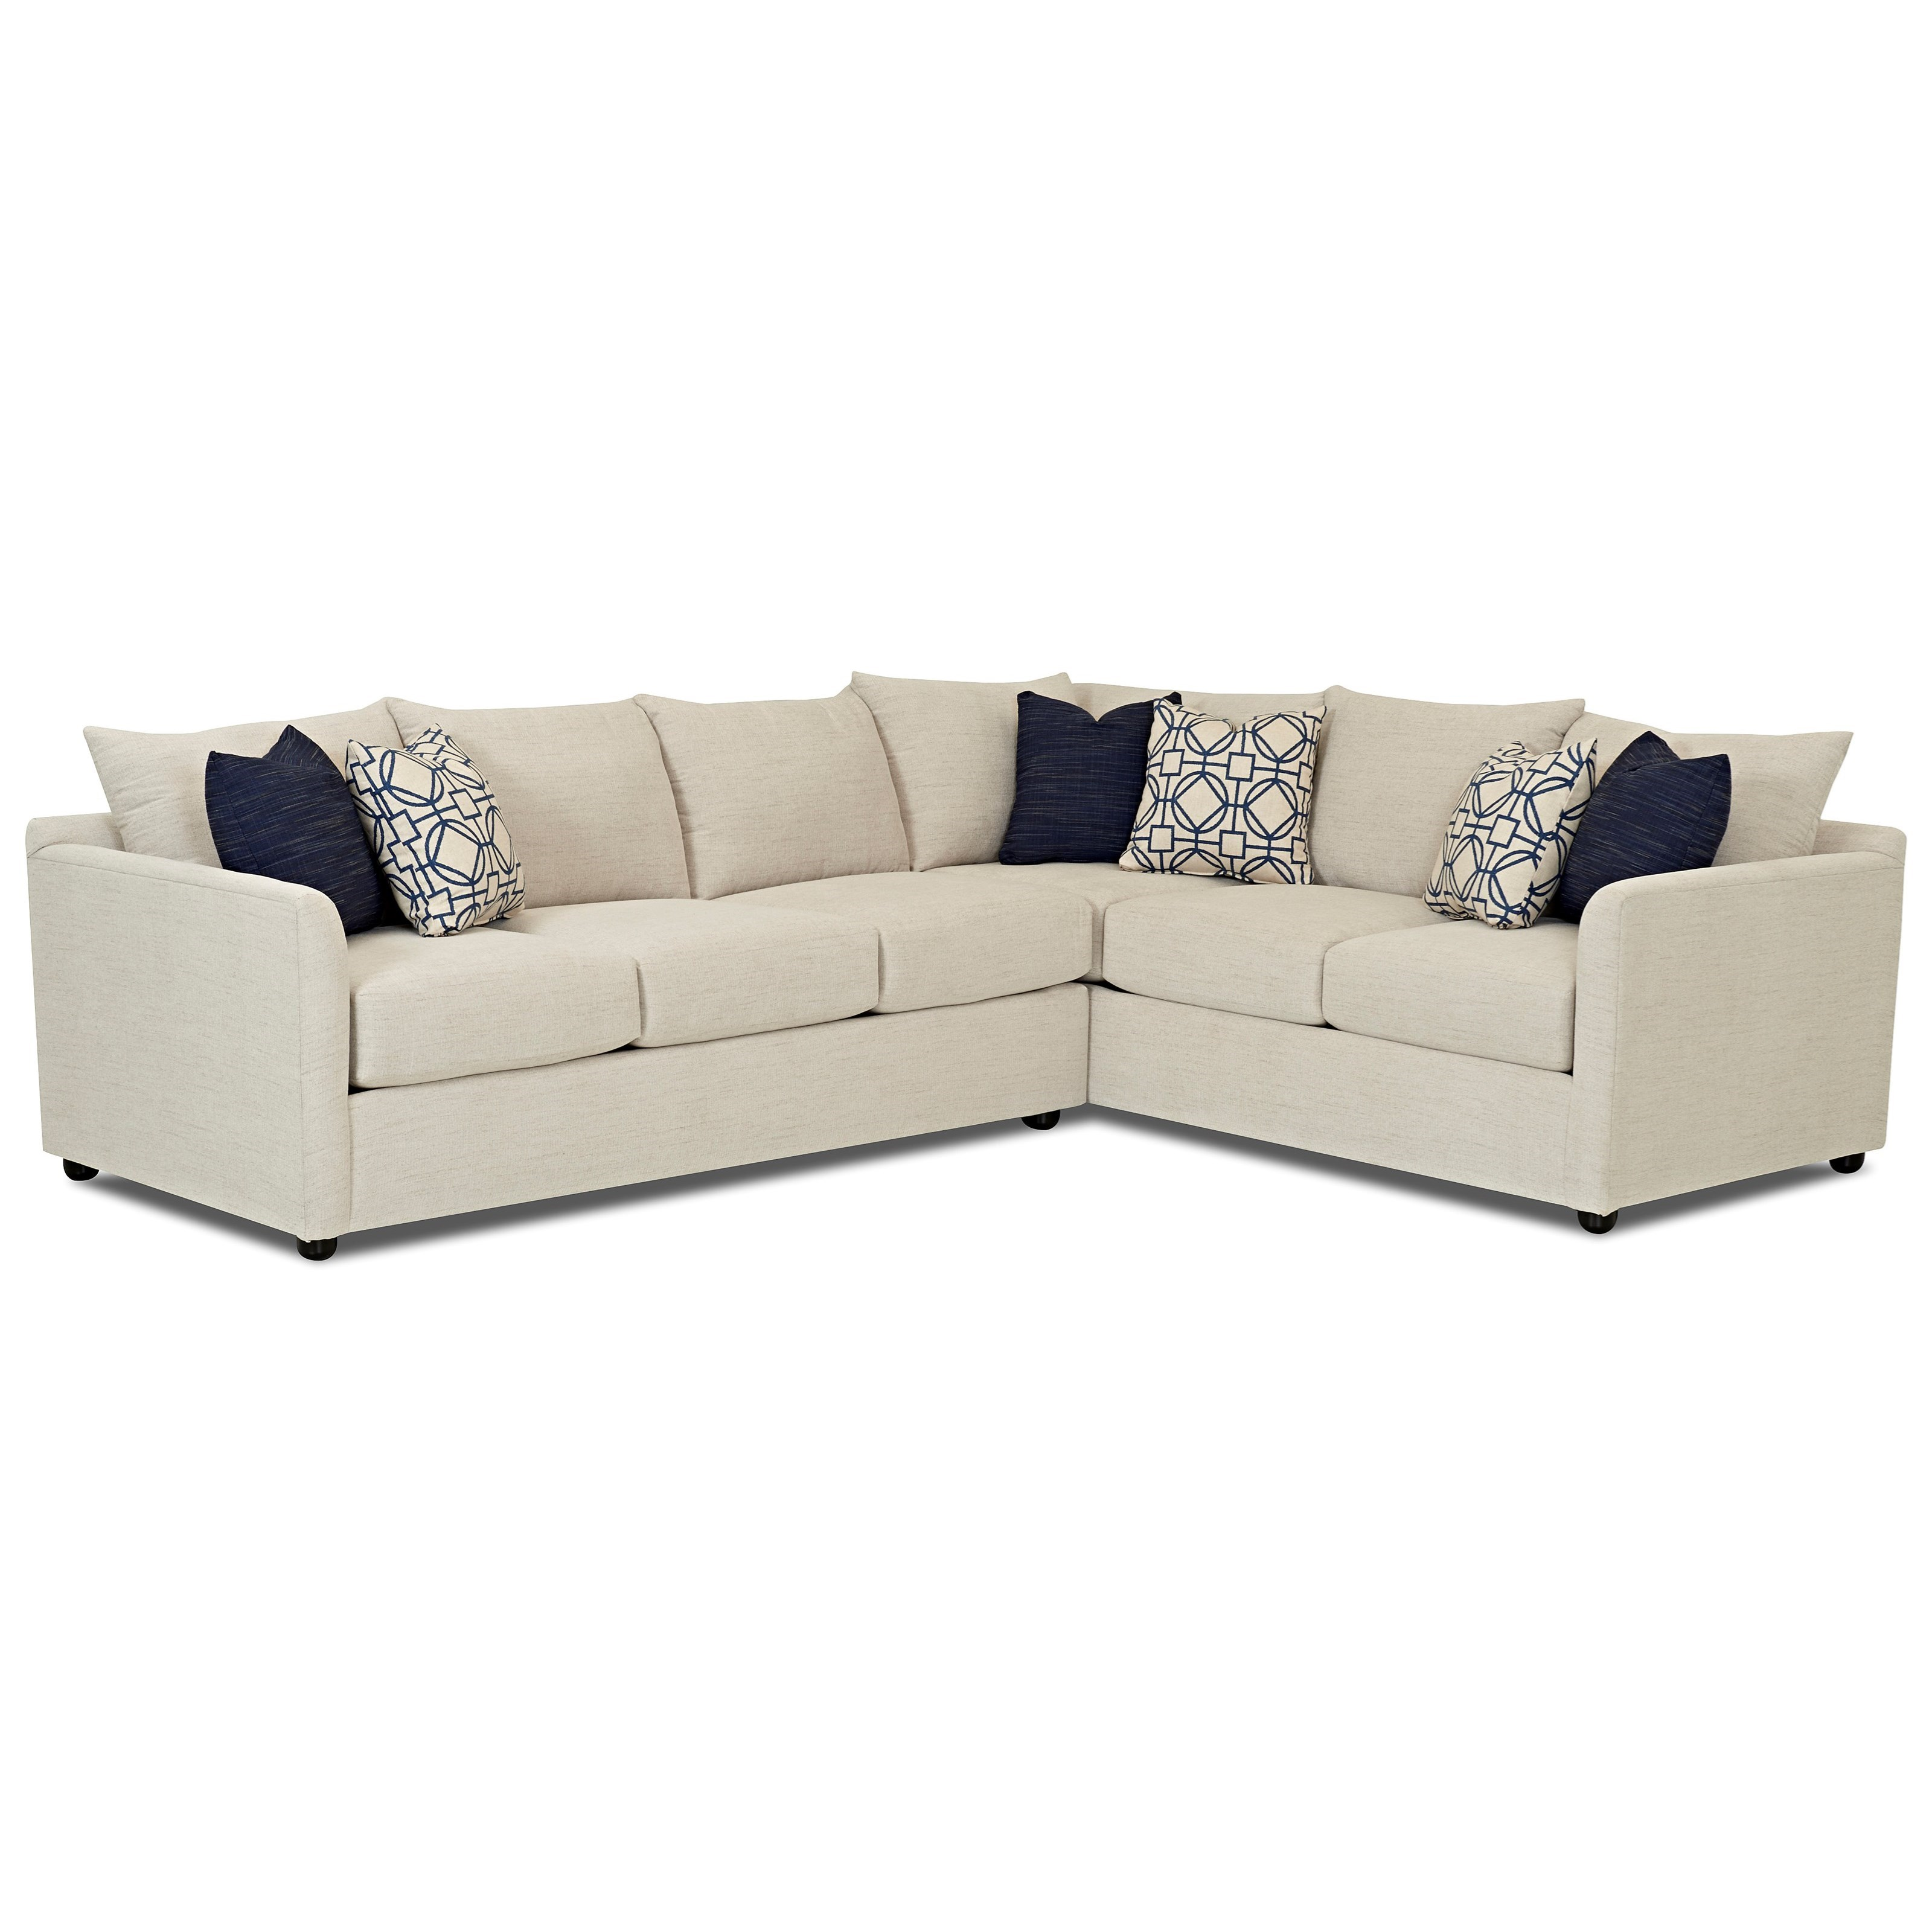 Trisha yearwood home collection by klaussner atlanta for Sectional sofa sale atlanta